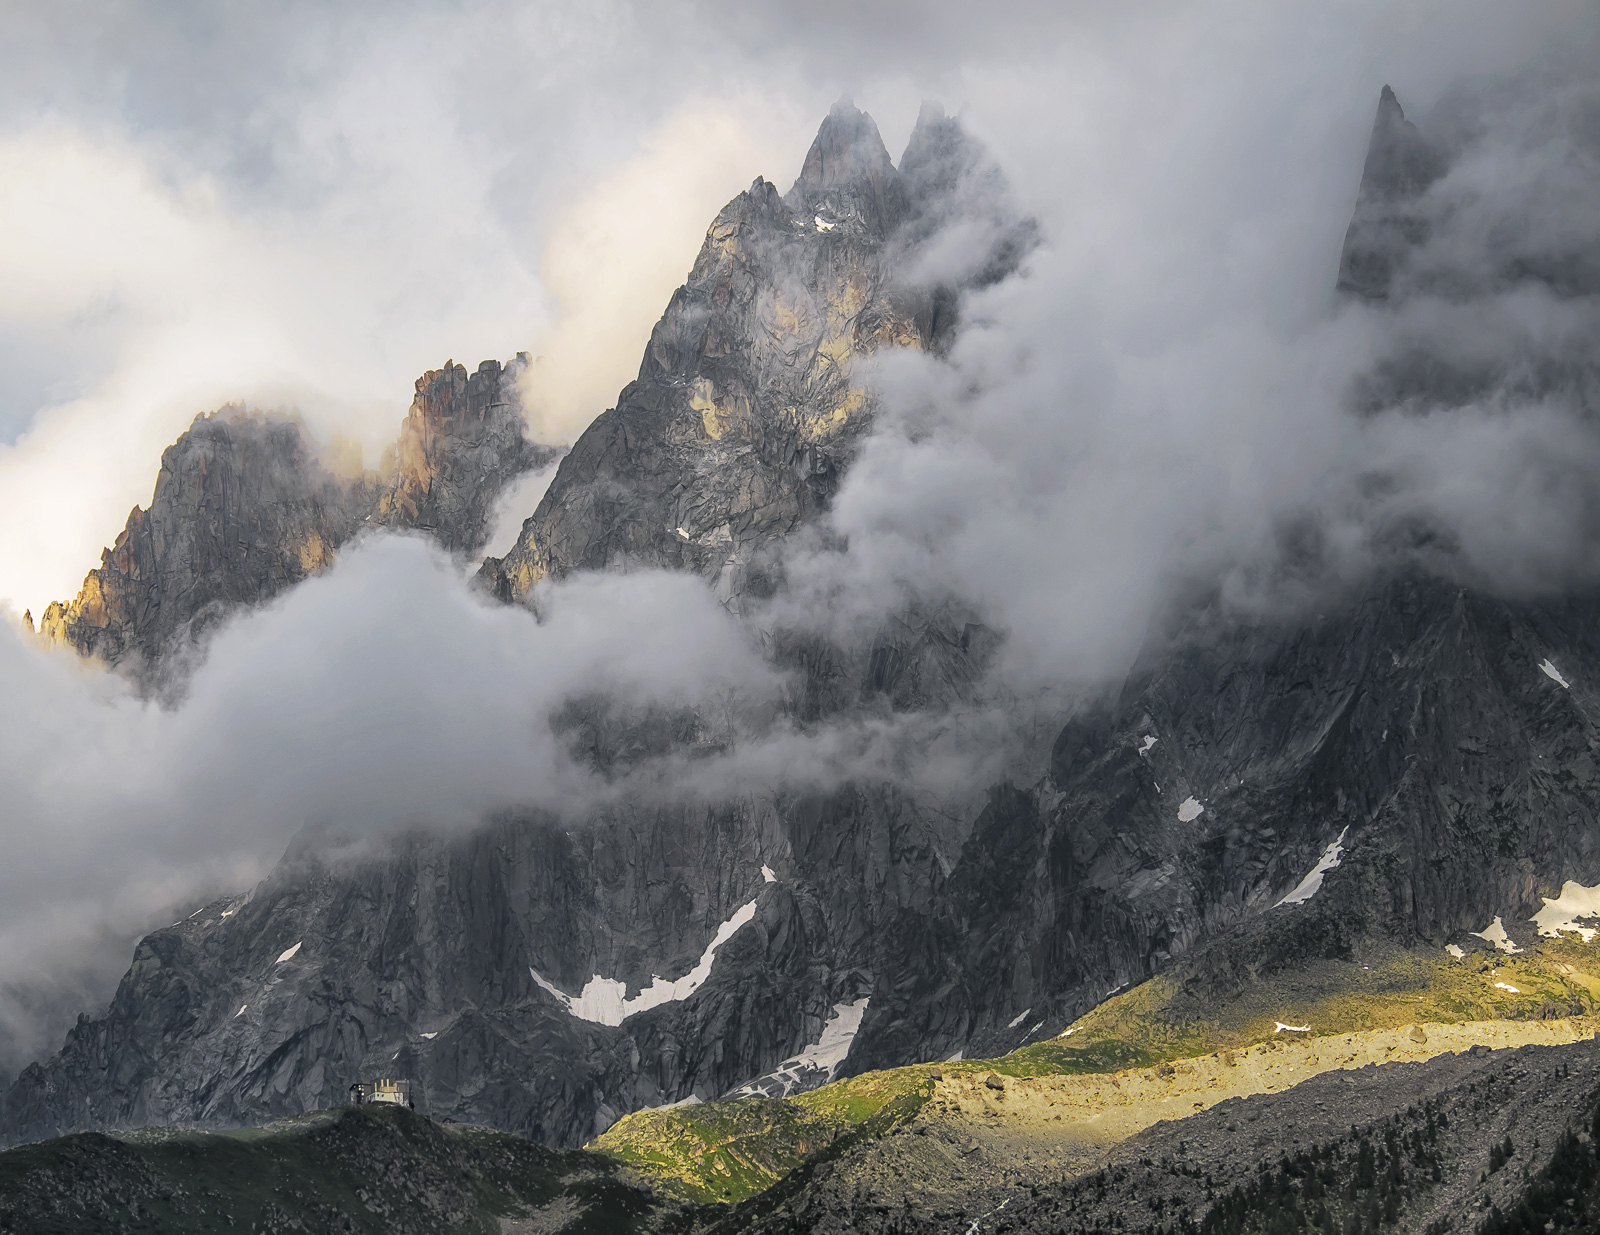 Storm Midi Aiguille, Les Houches, Chamonix, France, altitude, Mont Blanc, hike, hills, storm, balcony, epic, sunlight, c, photo